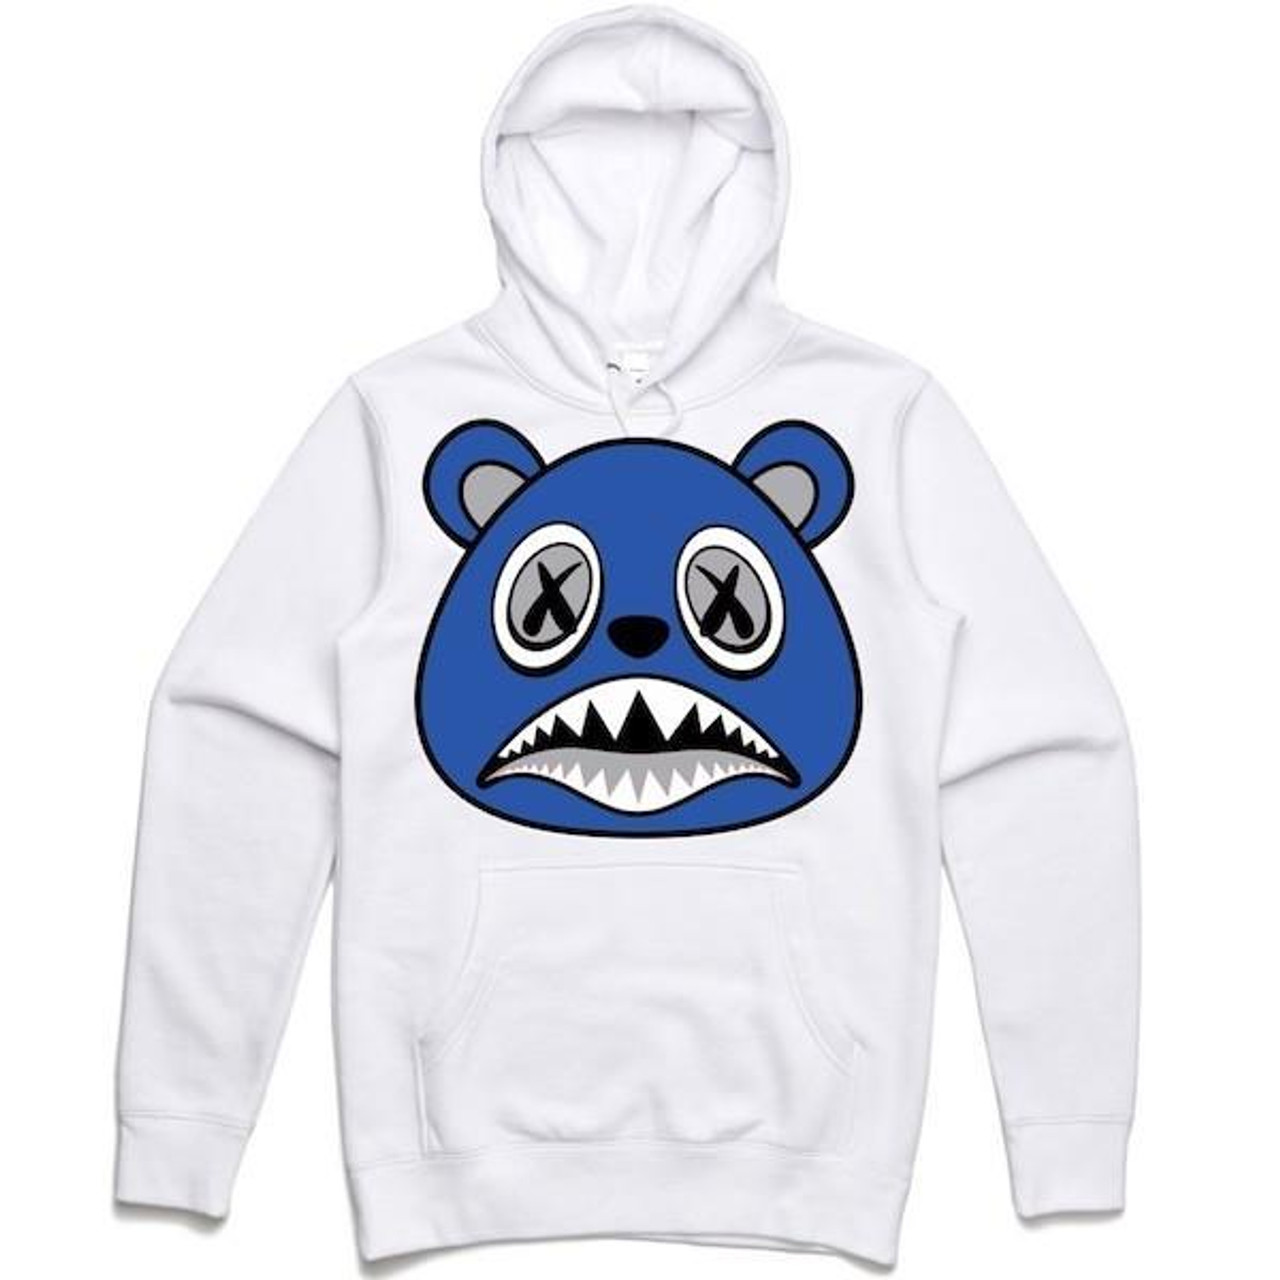 88a1140871b BAWS Bear Blue Logo White Hoodie - KCT Streetwear is the OFFICIAL ...